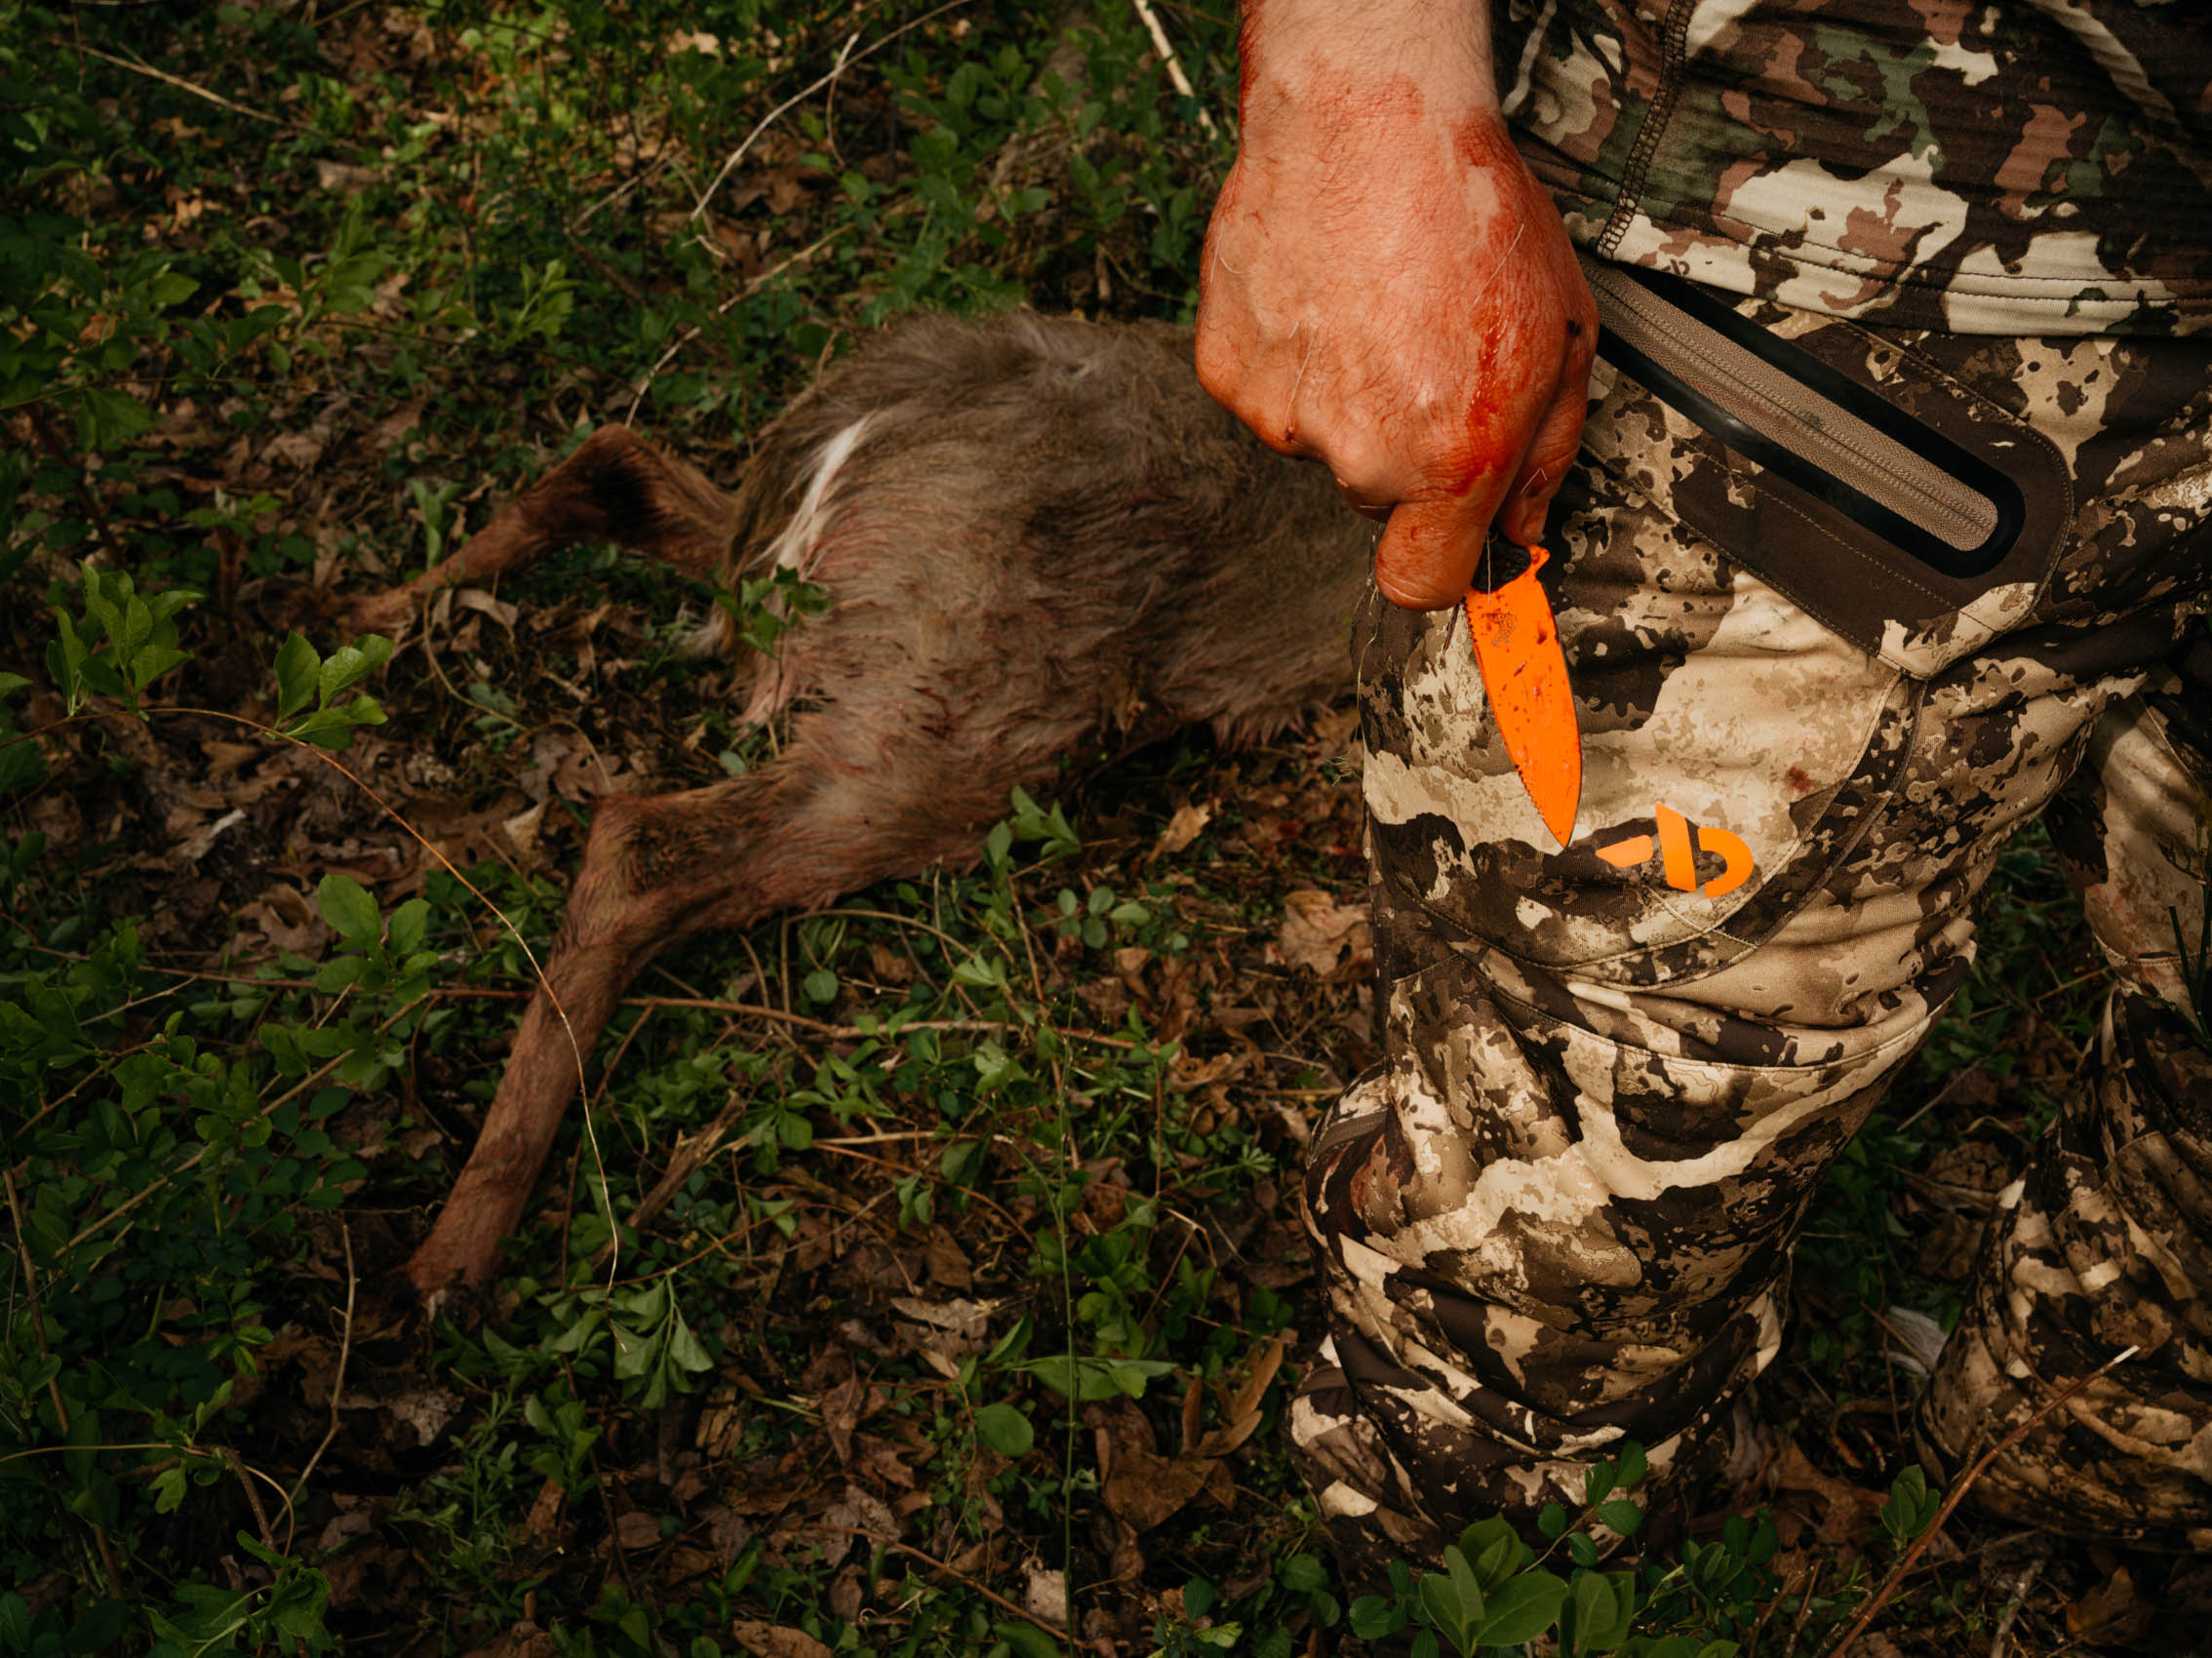 Deer Hunter with orange knife after dressing deer killed